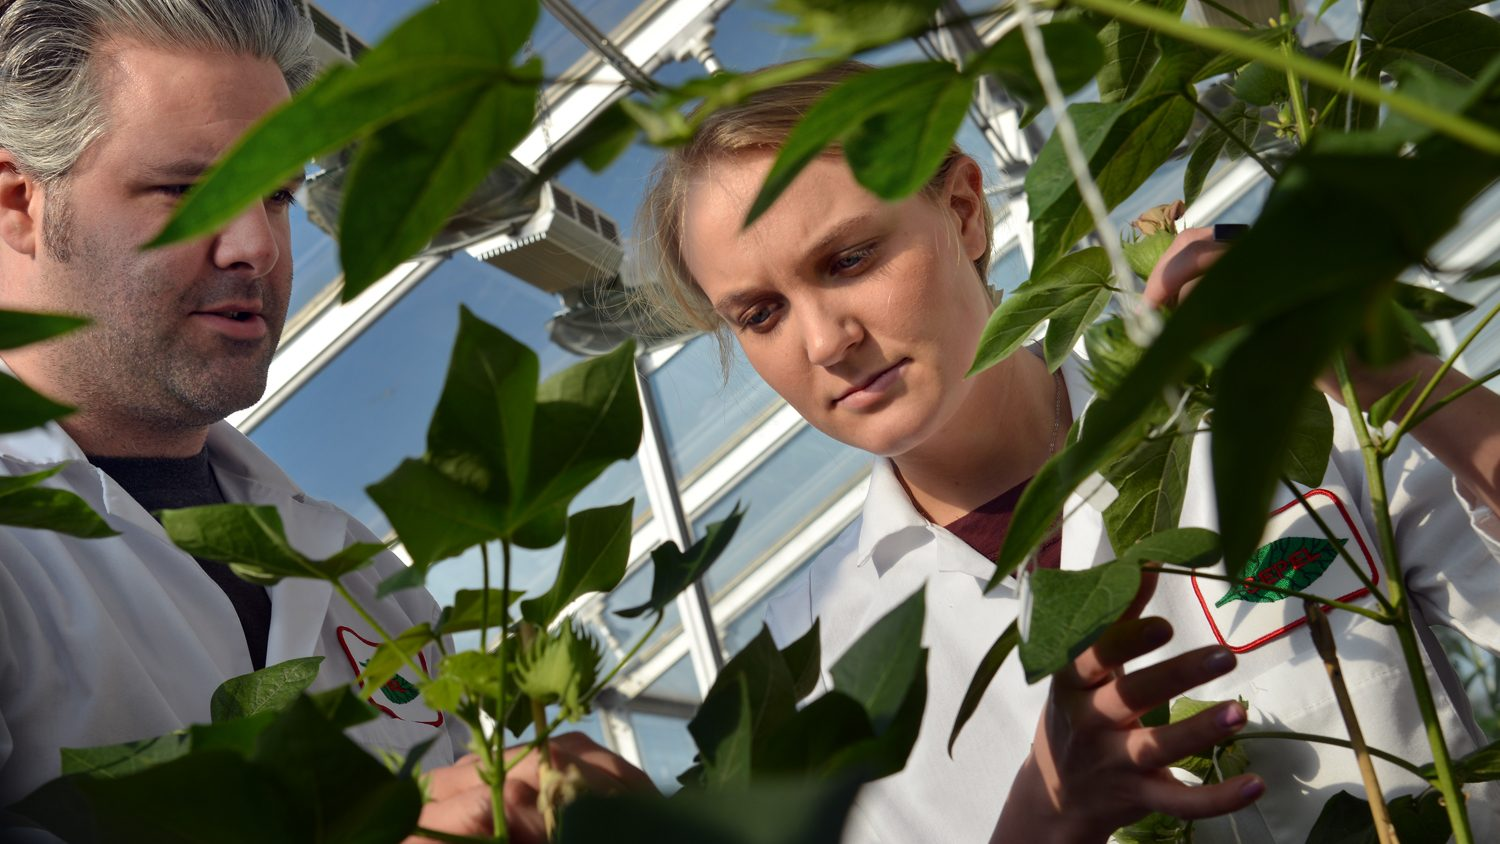 NC State researchers examine plants in a greenhouse.